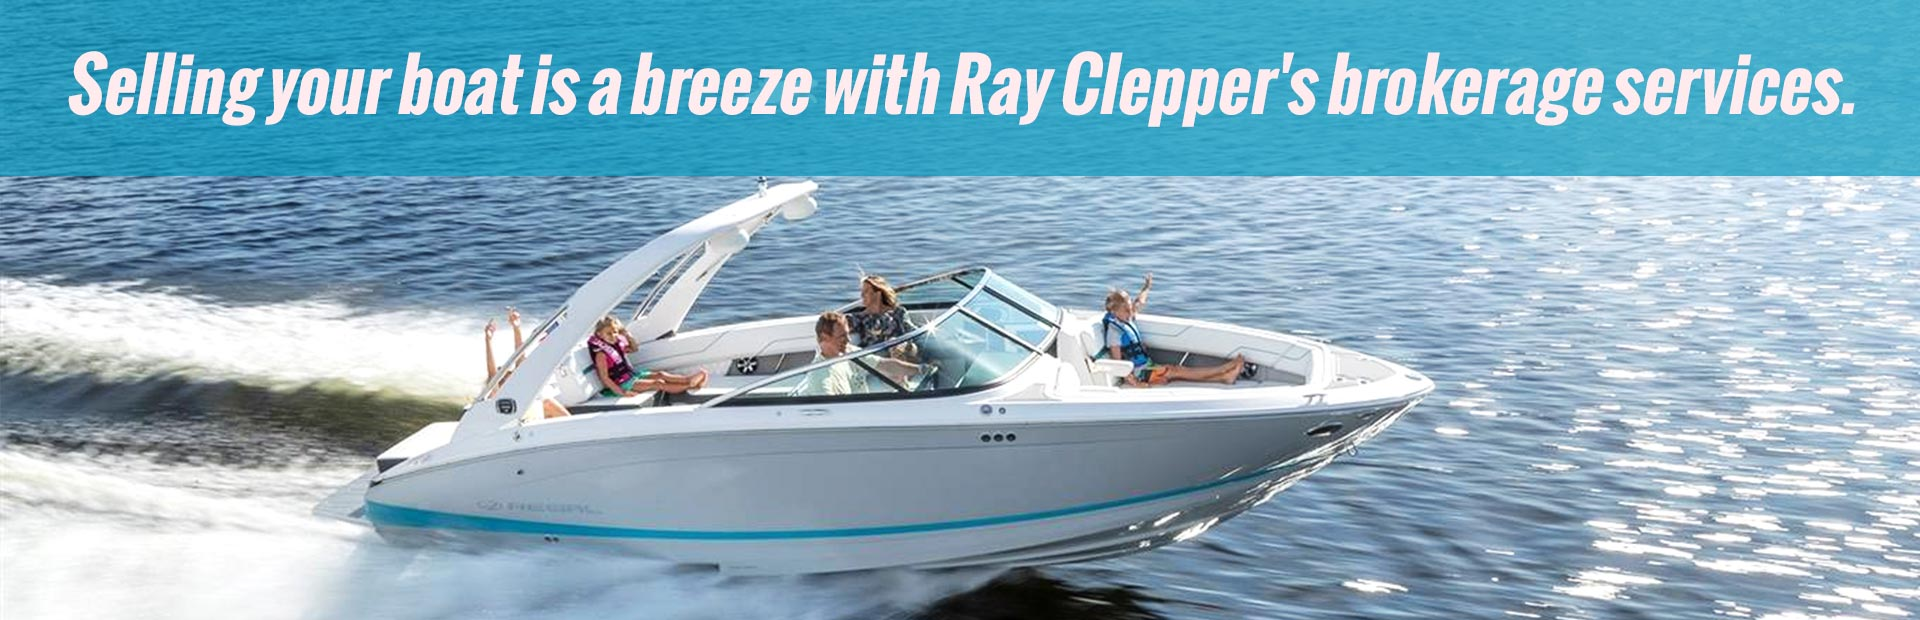 Selling your boat is a breeze with Ray Clepper's brokerage services. Click here for details.